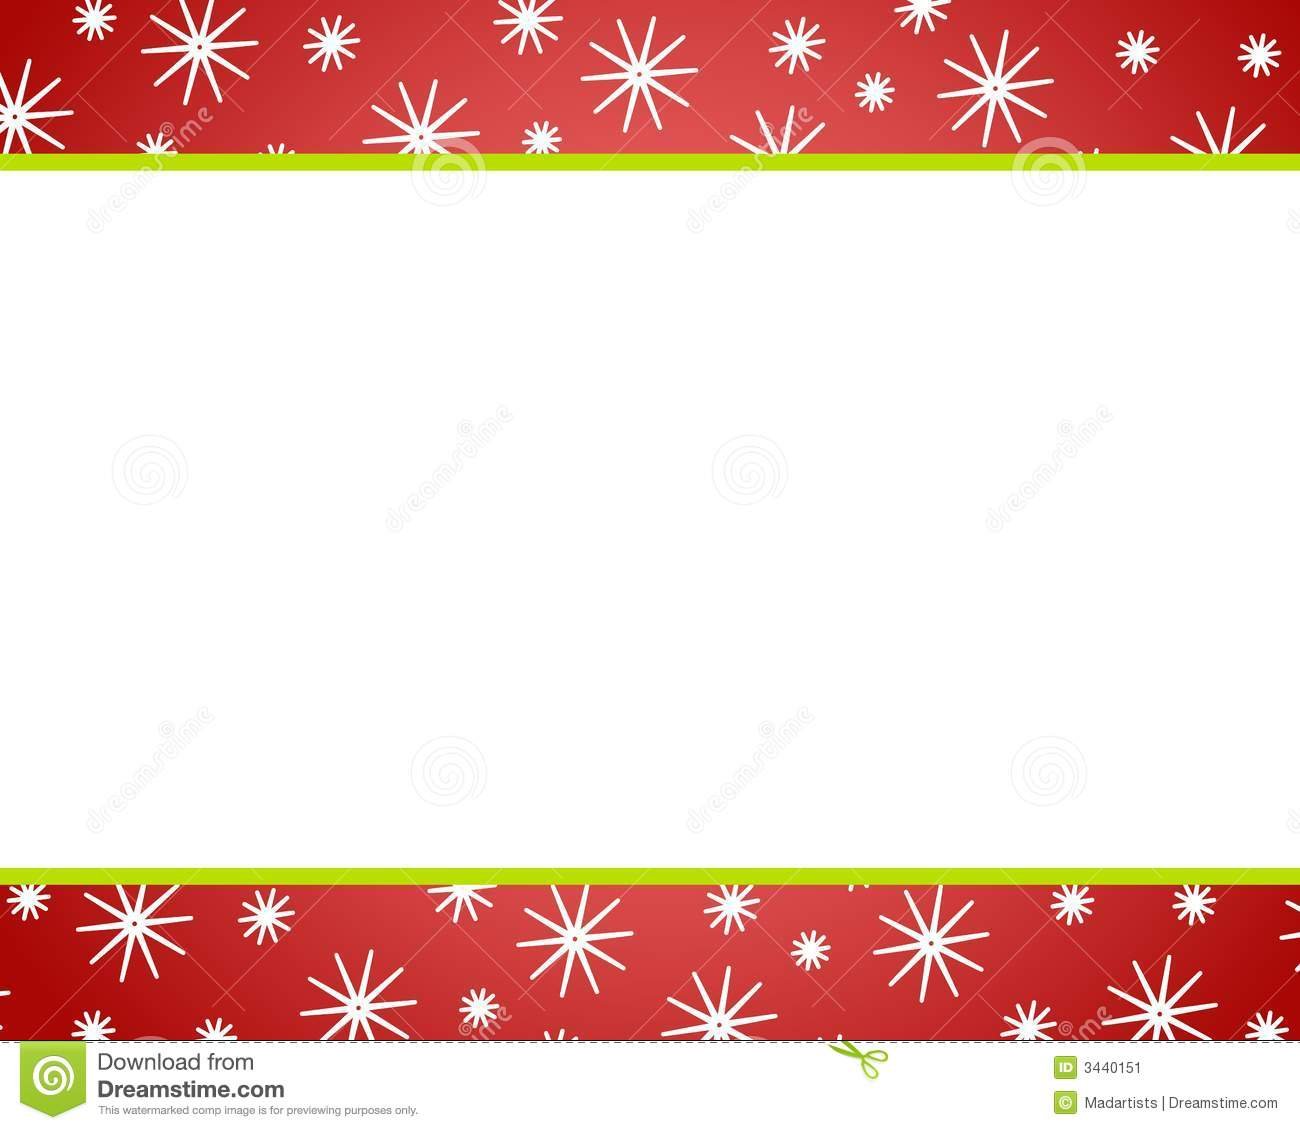 Red Christmas Border Clipart - Clipart Kid